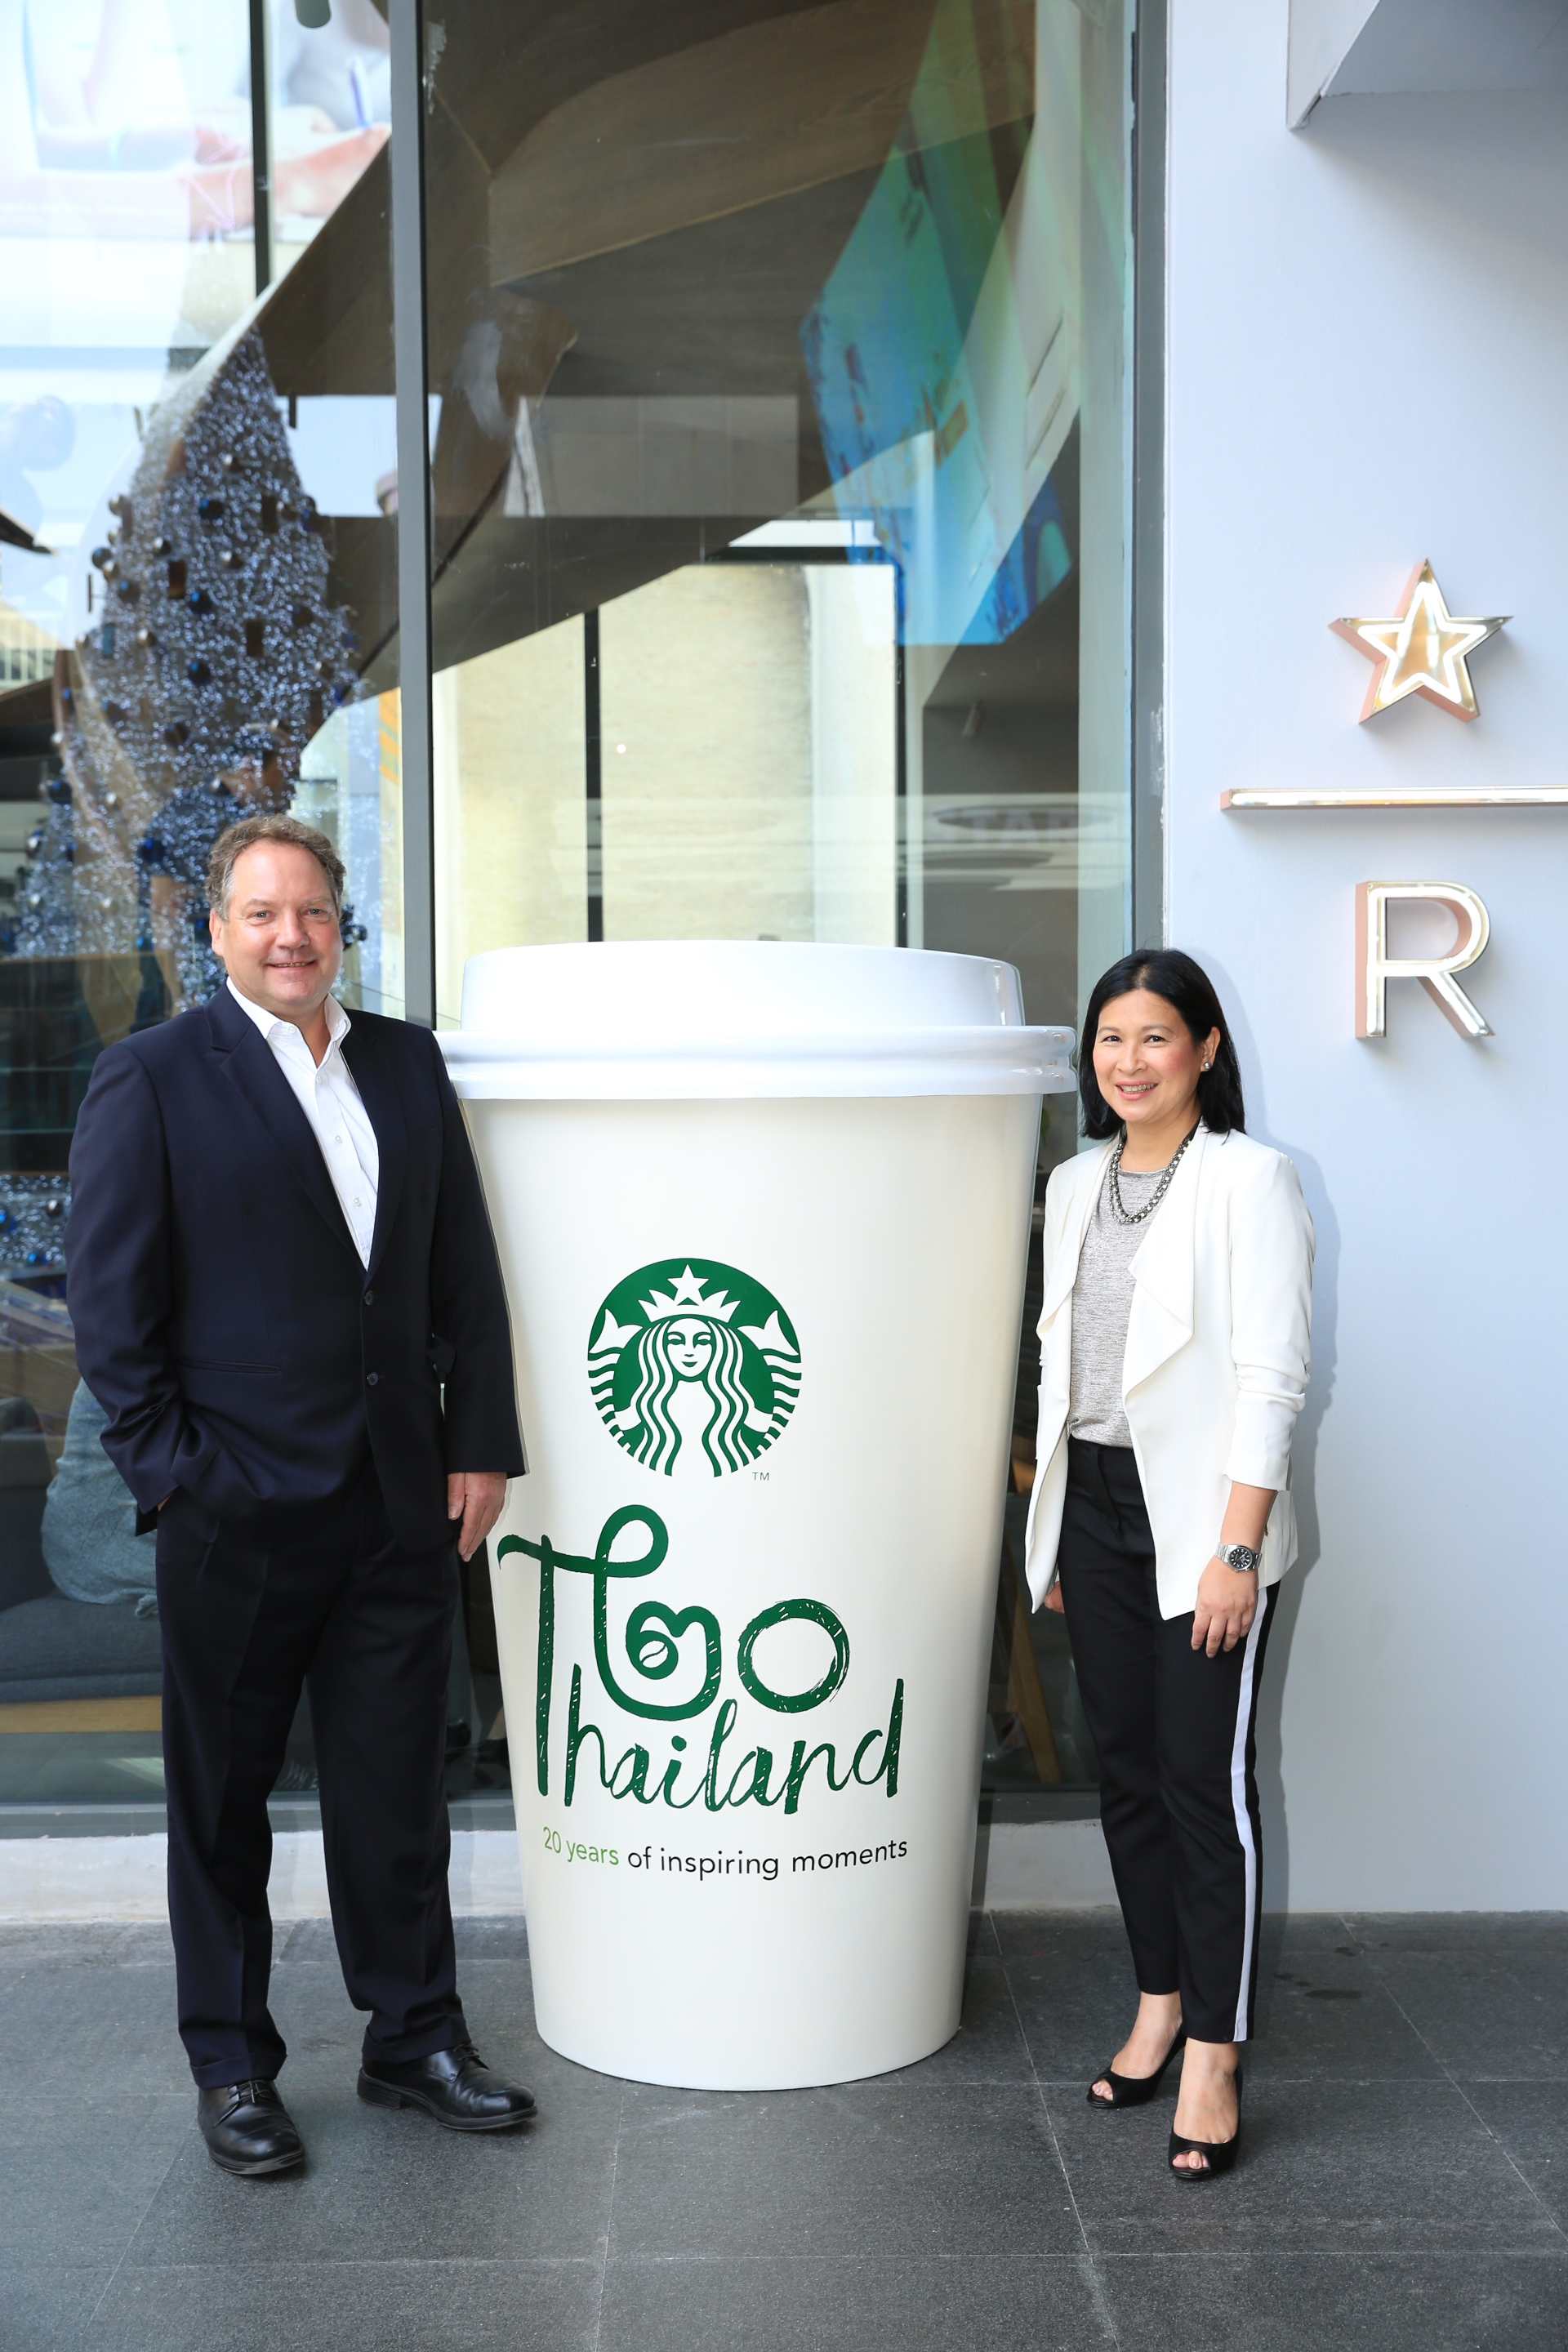 Murray Darling MD and Sumonpin Marketing Director with giant cup